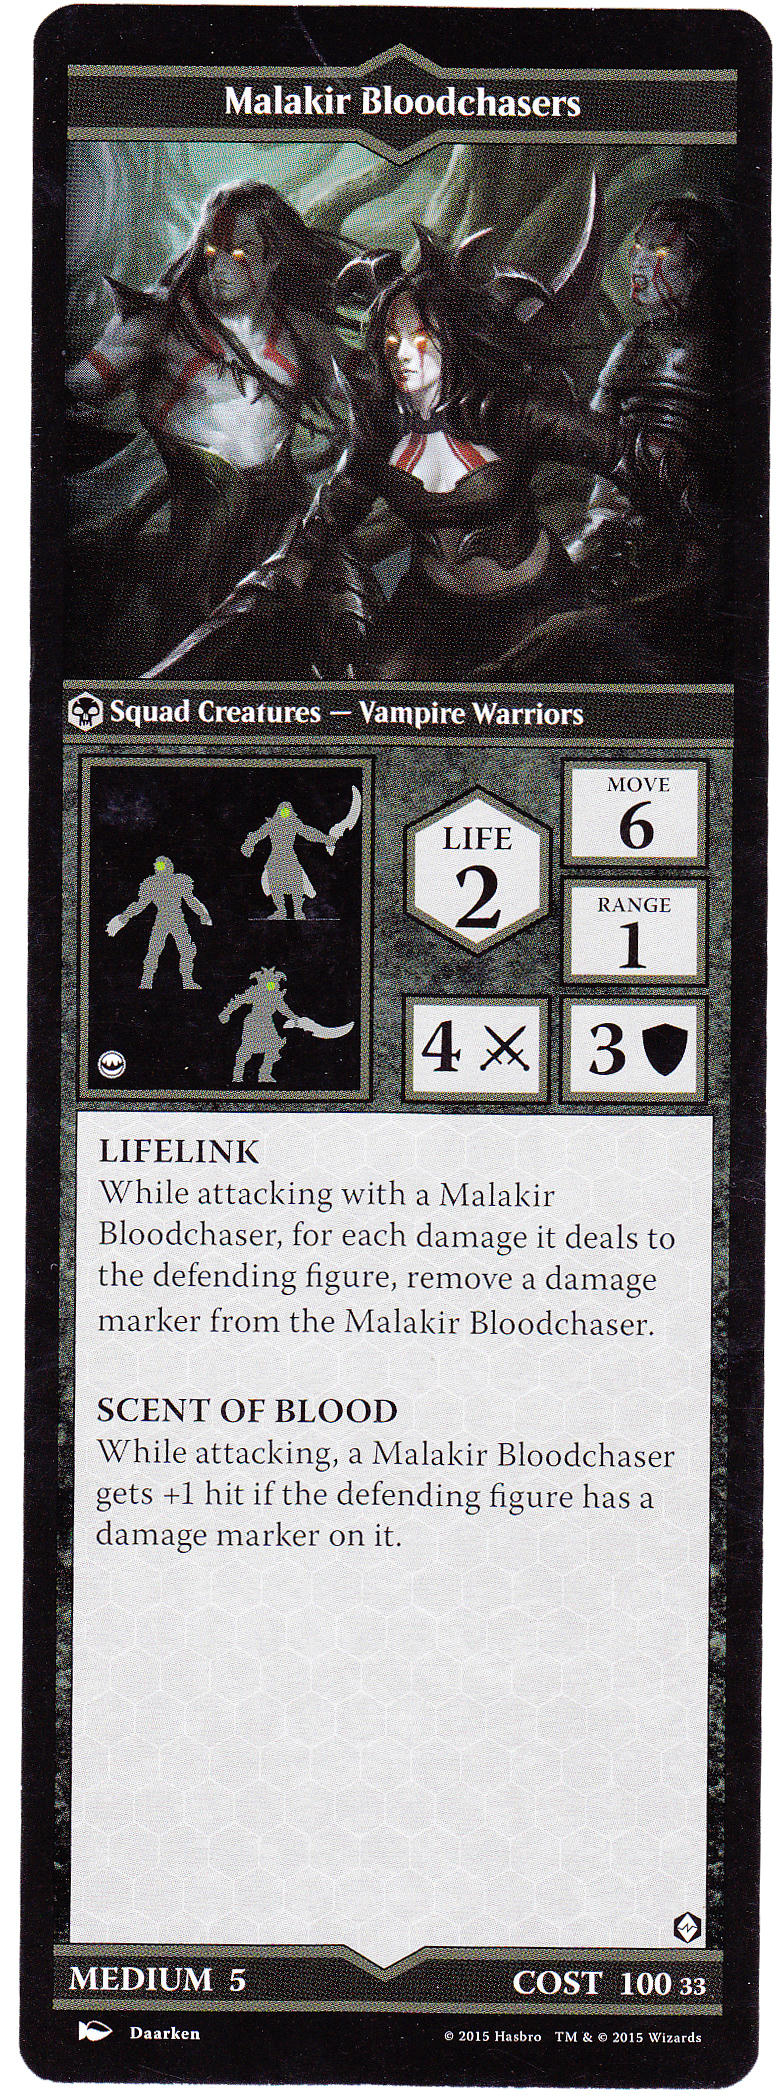 The Book of Malakir Bloodchasers - Heroscapers Planeswalker Arena Custom